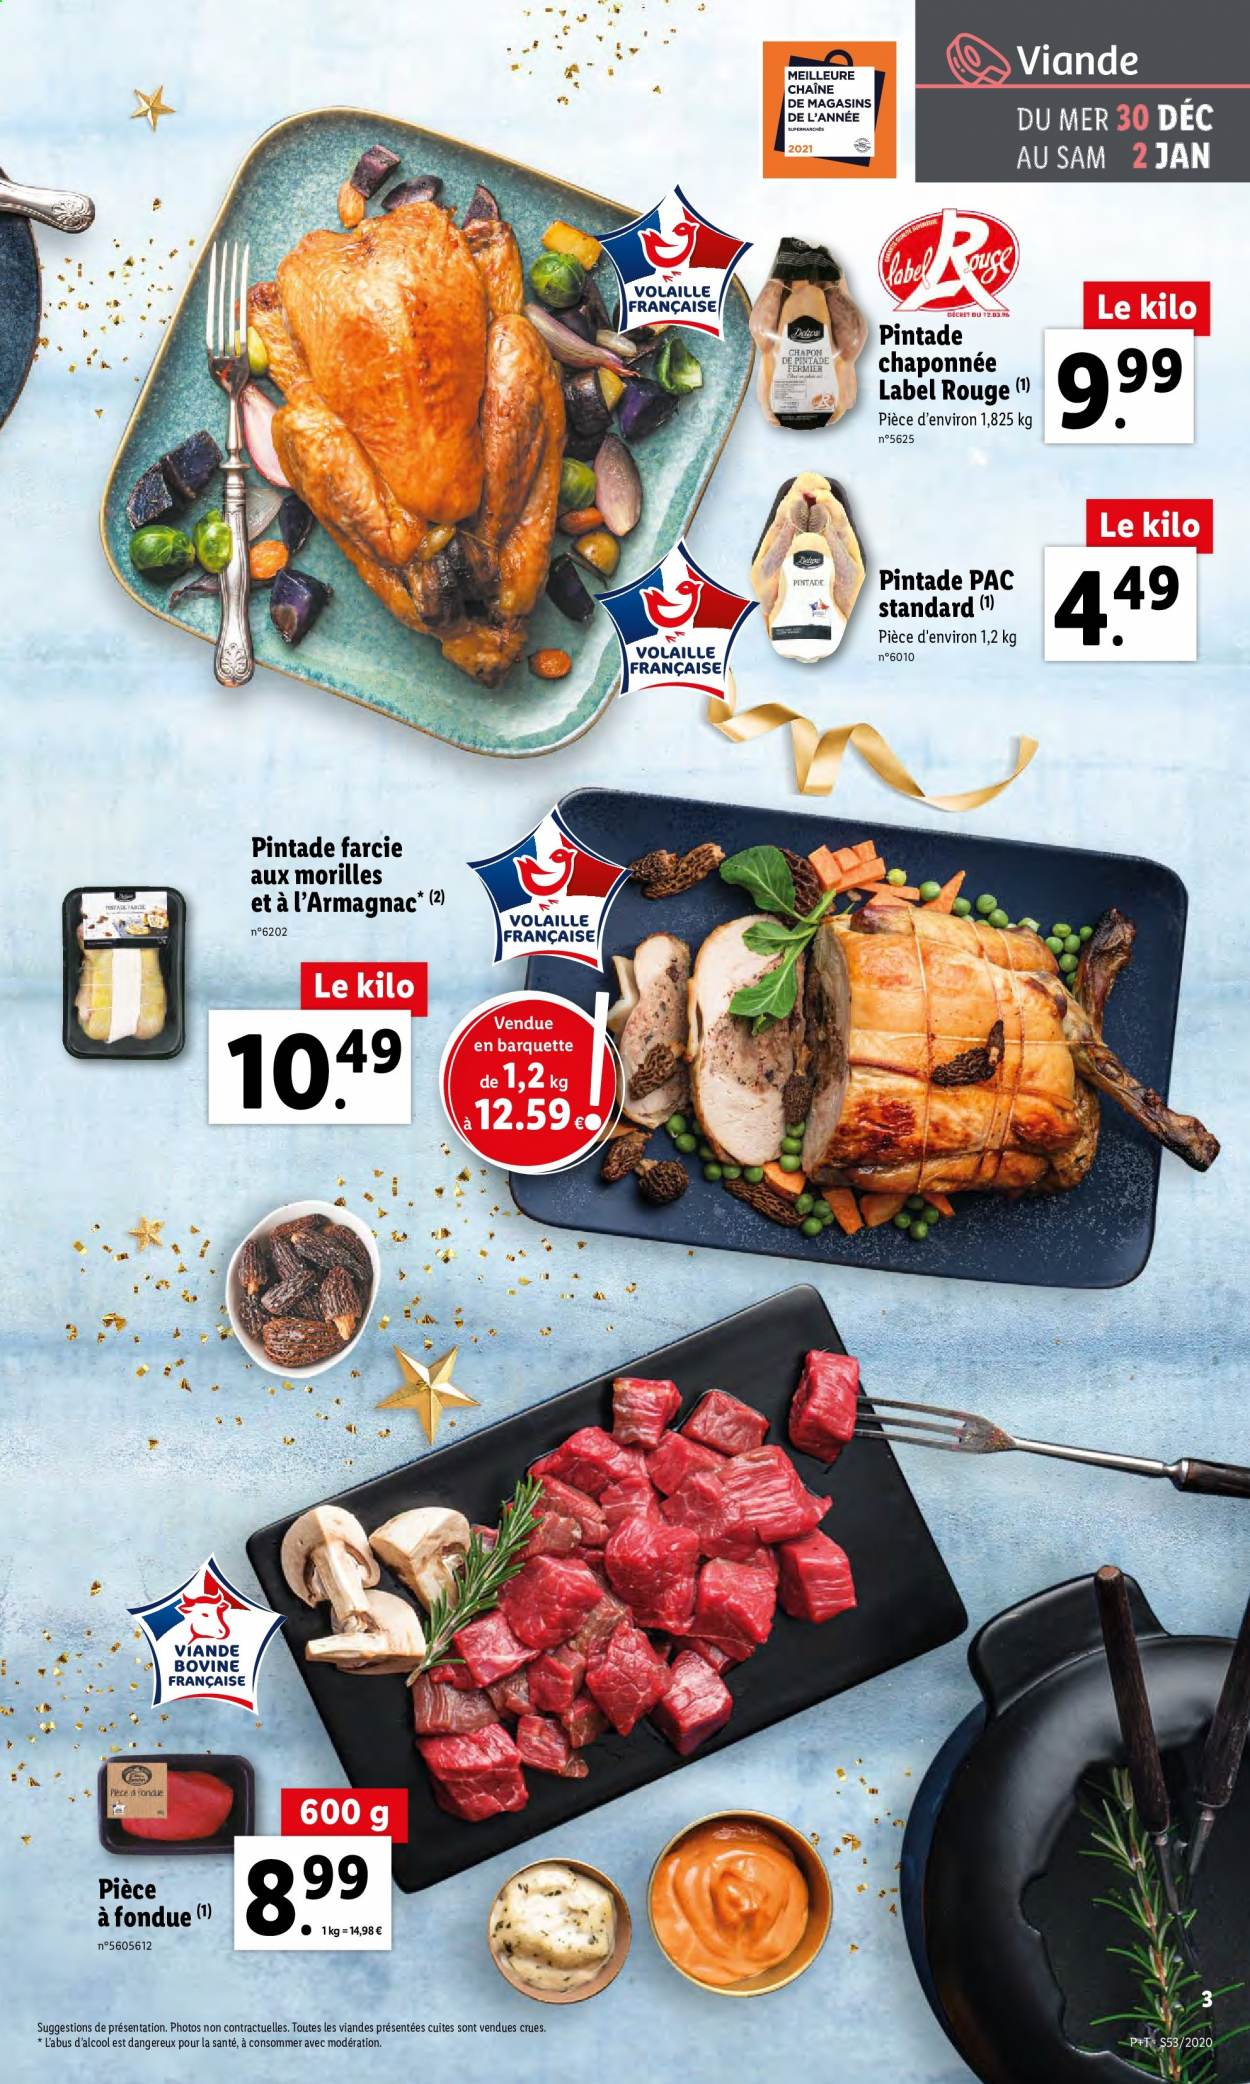 Catalogue Lidl - 30.12.2020 - 05.01.2021. Page 3.